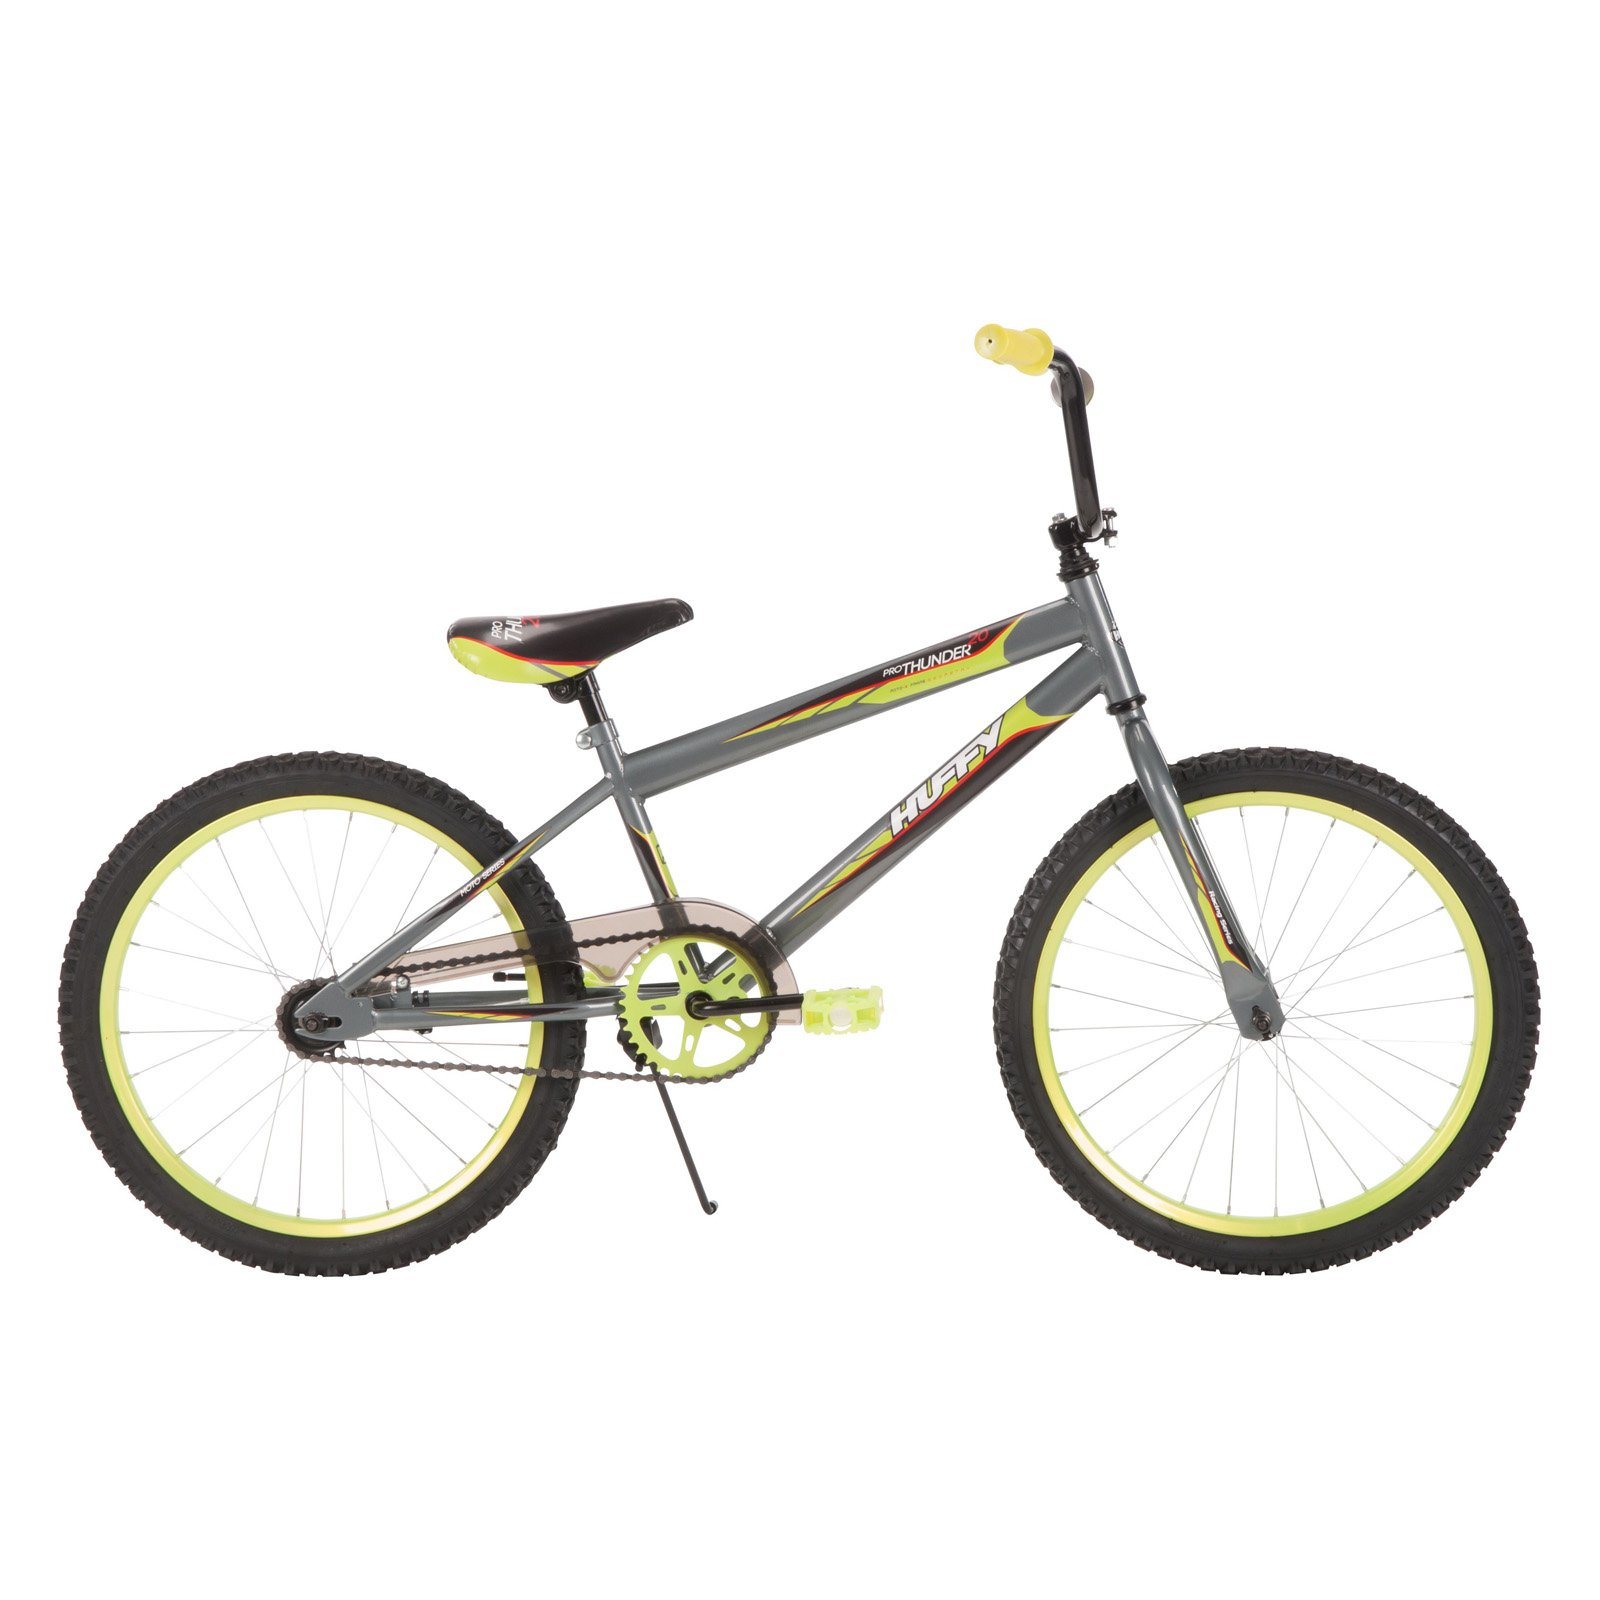 Huffy 20 in. Pro Thunder Bike Yellow by Huffy Bicycles